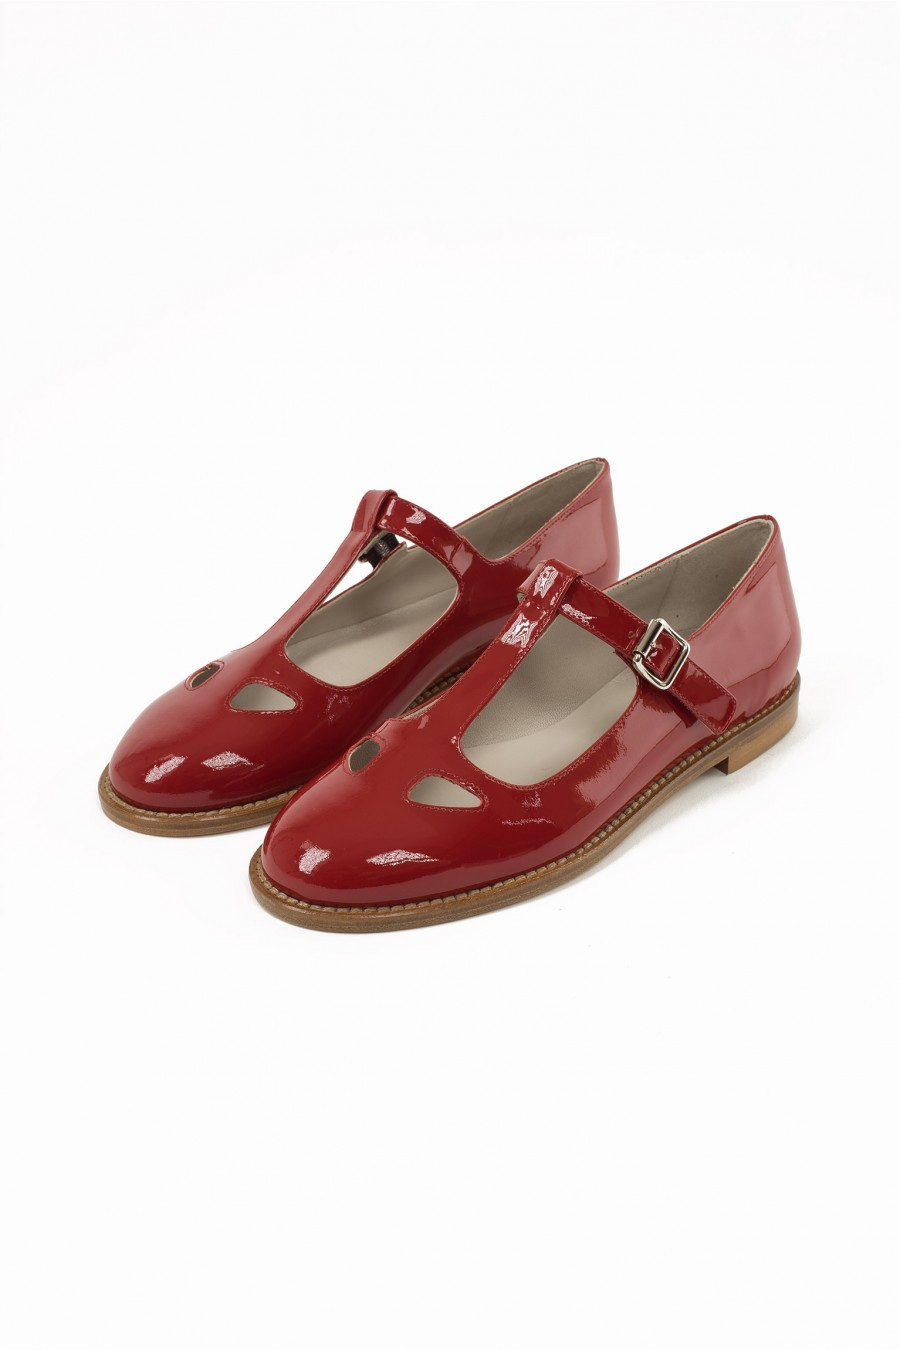 bebè patent leather red